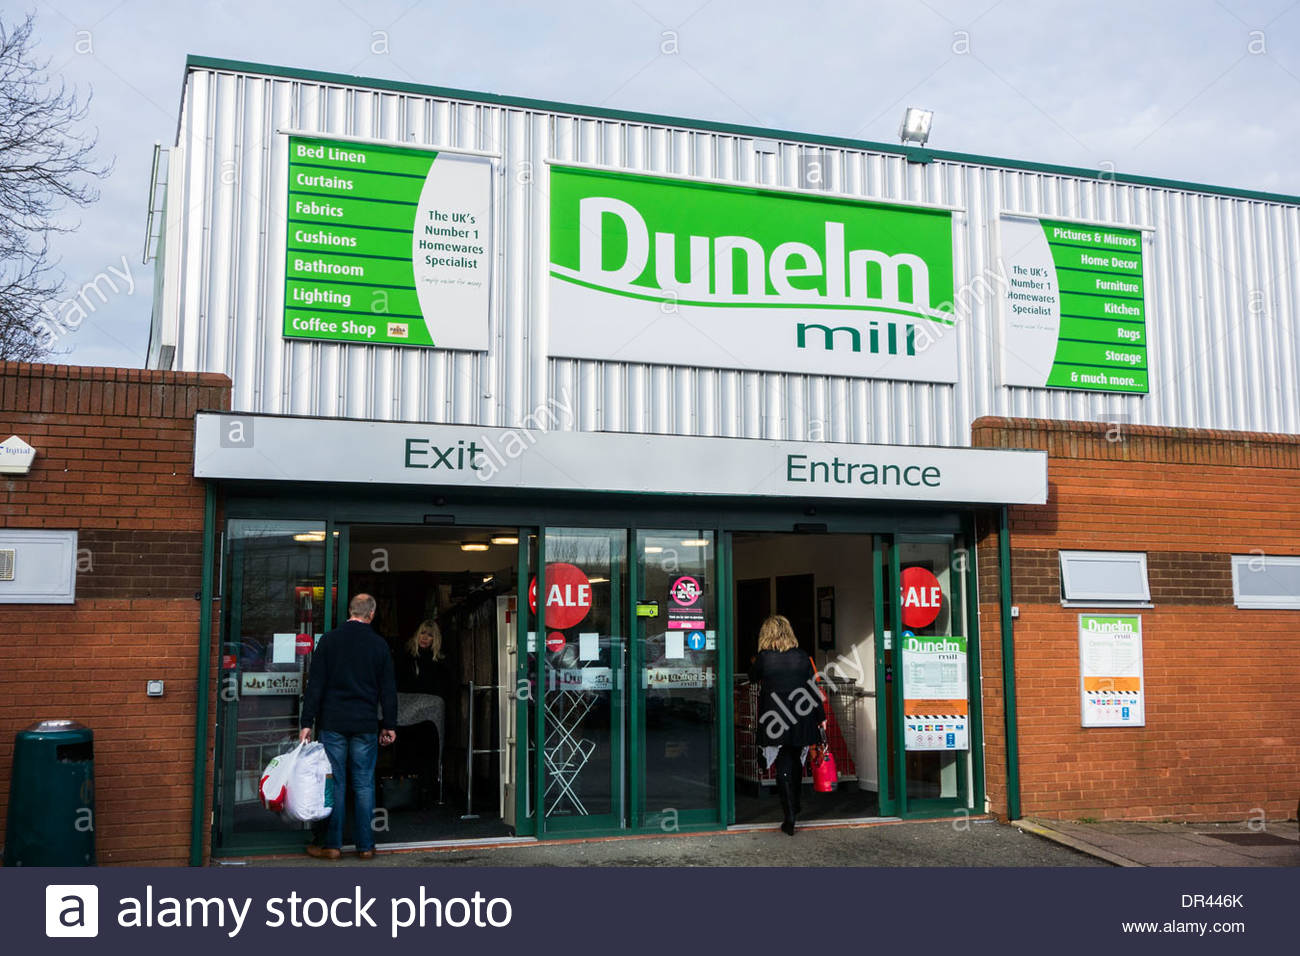 Dunelm Shop Imágenes De Stock & Dunelm Shop Fotos De Stock - Alamy